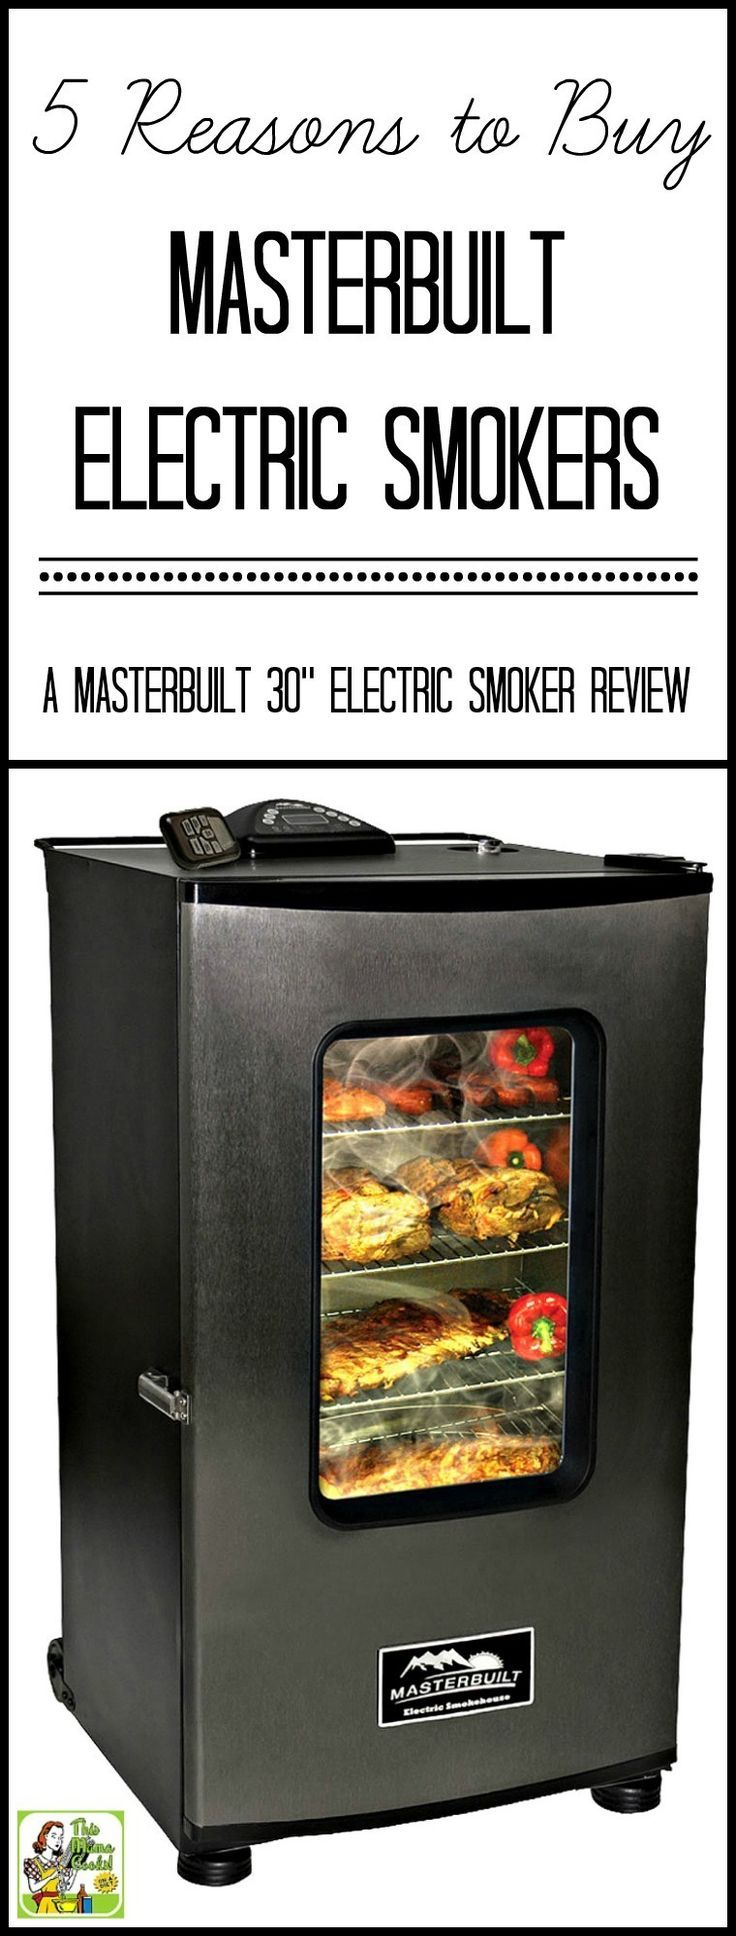 "5 Reasons to Buy Masterbuilt Electric Smokers–a Masterbuilt 30"" Electric Smoker Review"